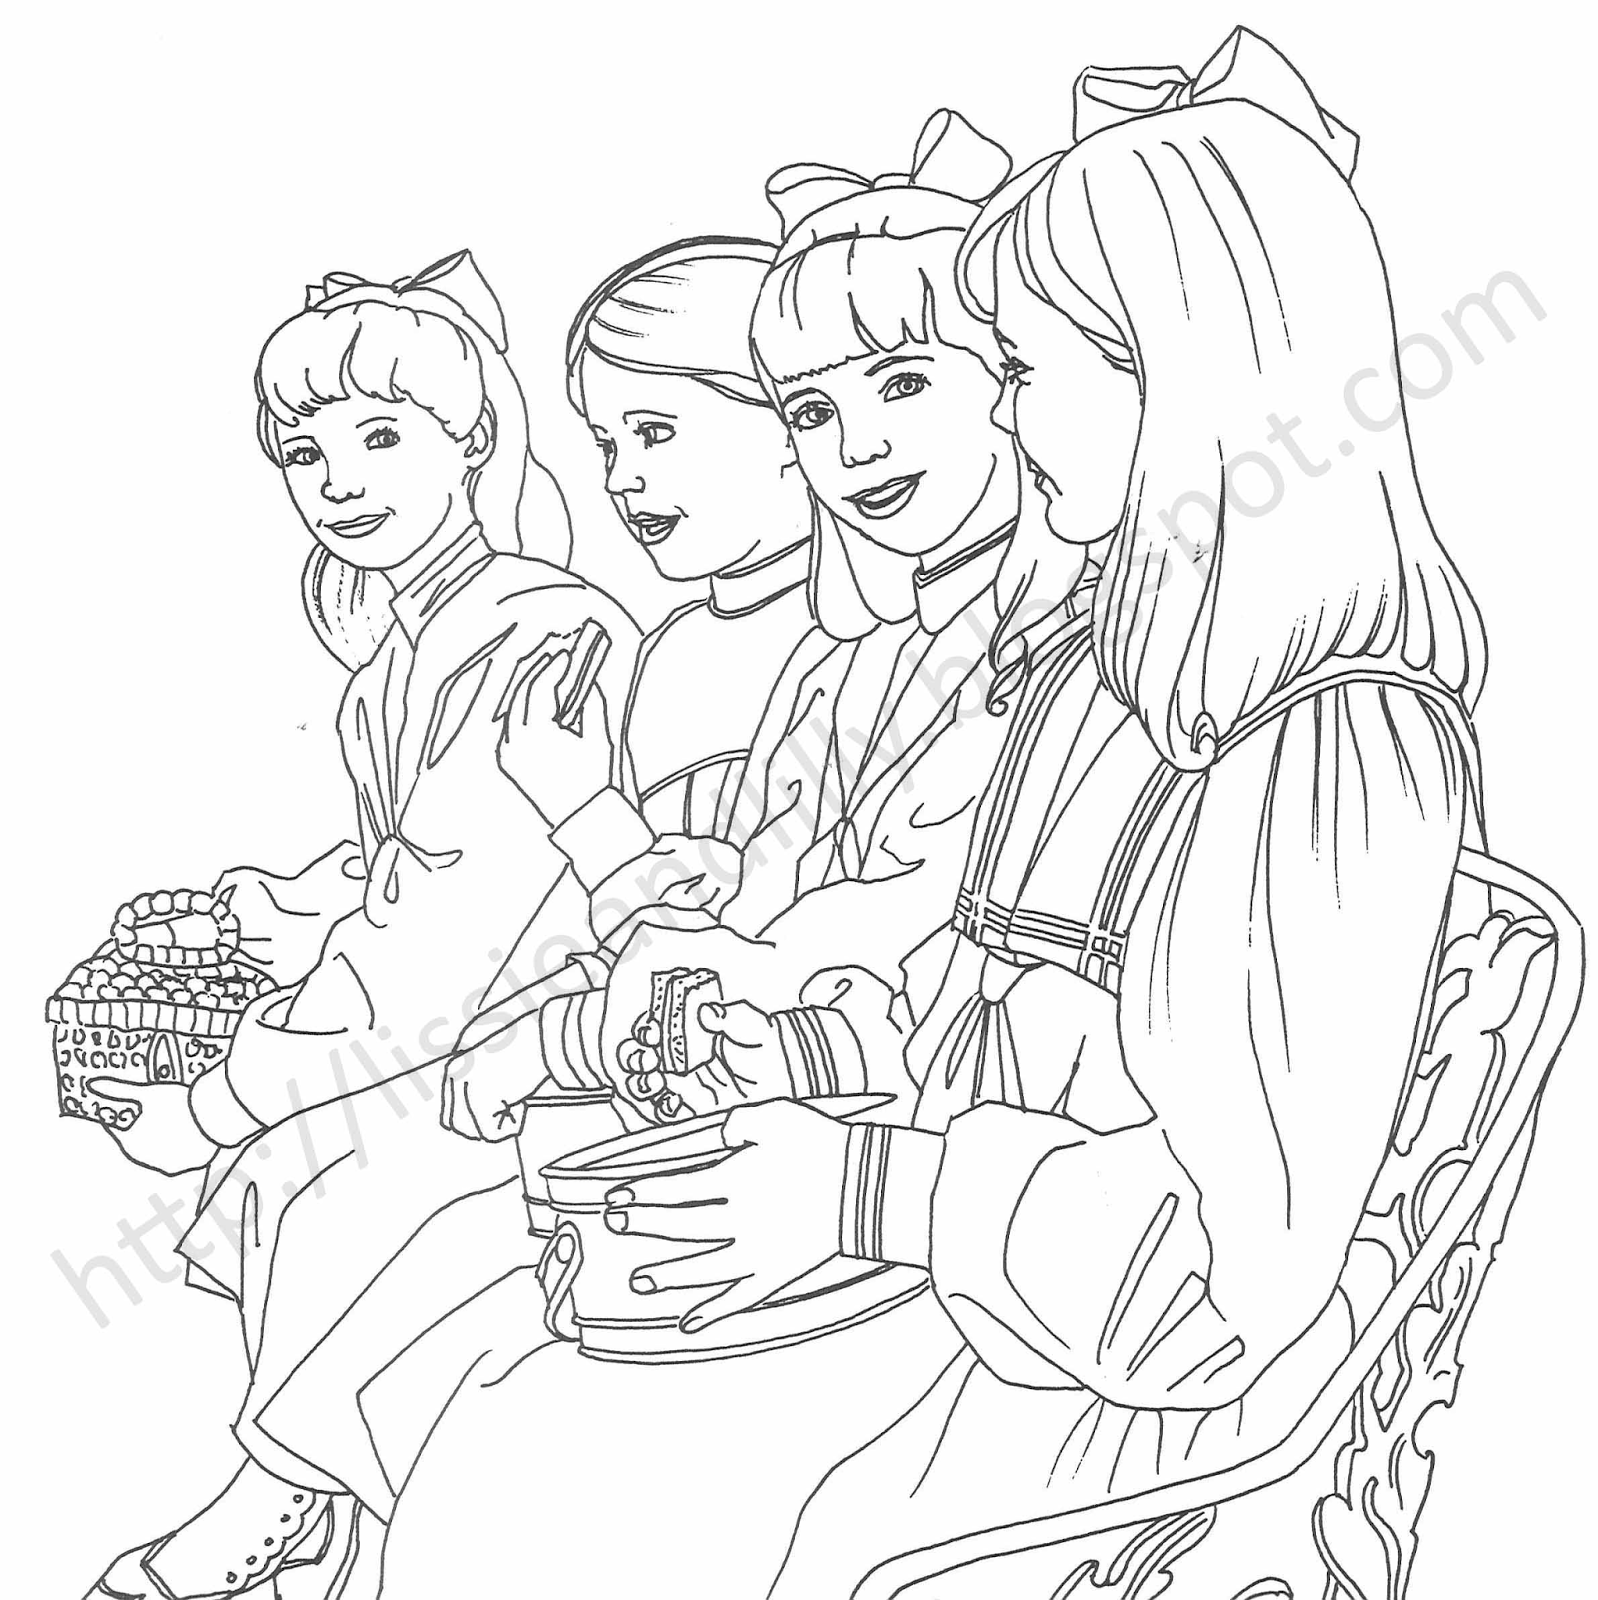 coloring pages of girls realistic the 25 best ideas for realistic girl people coloring pages girls pages of coloring realistic